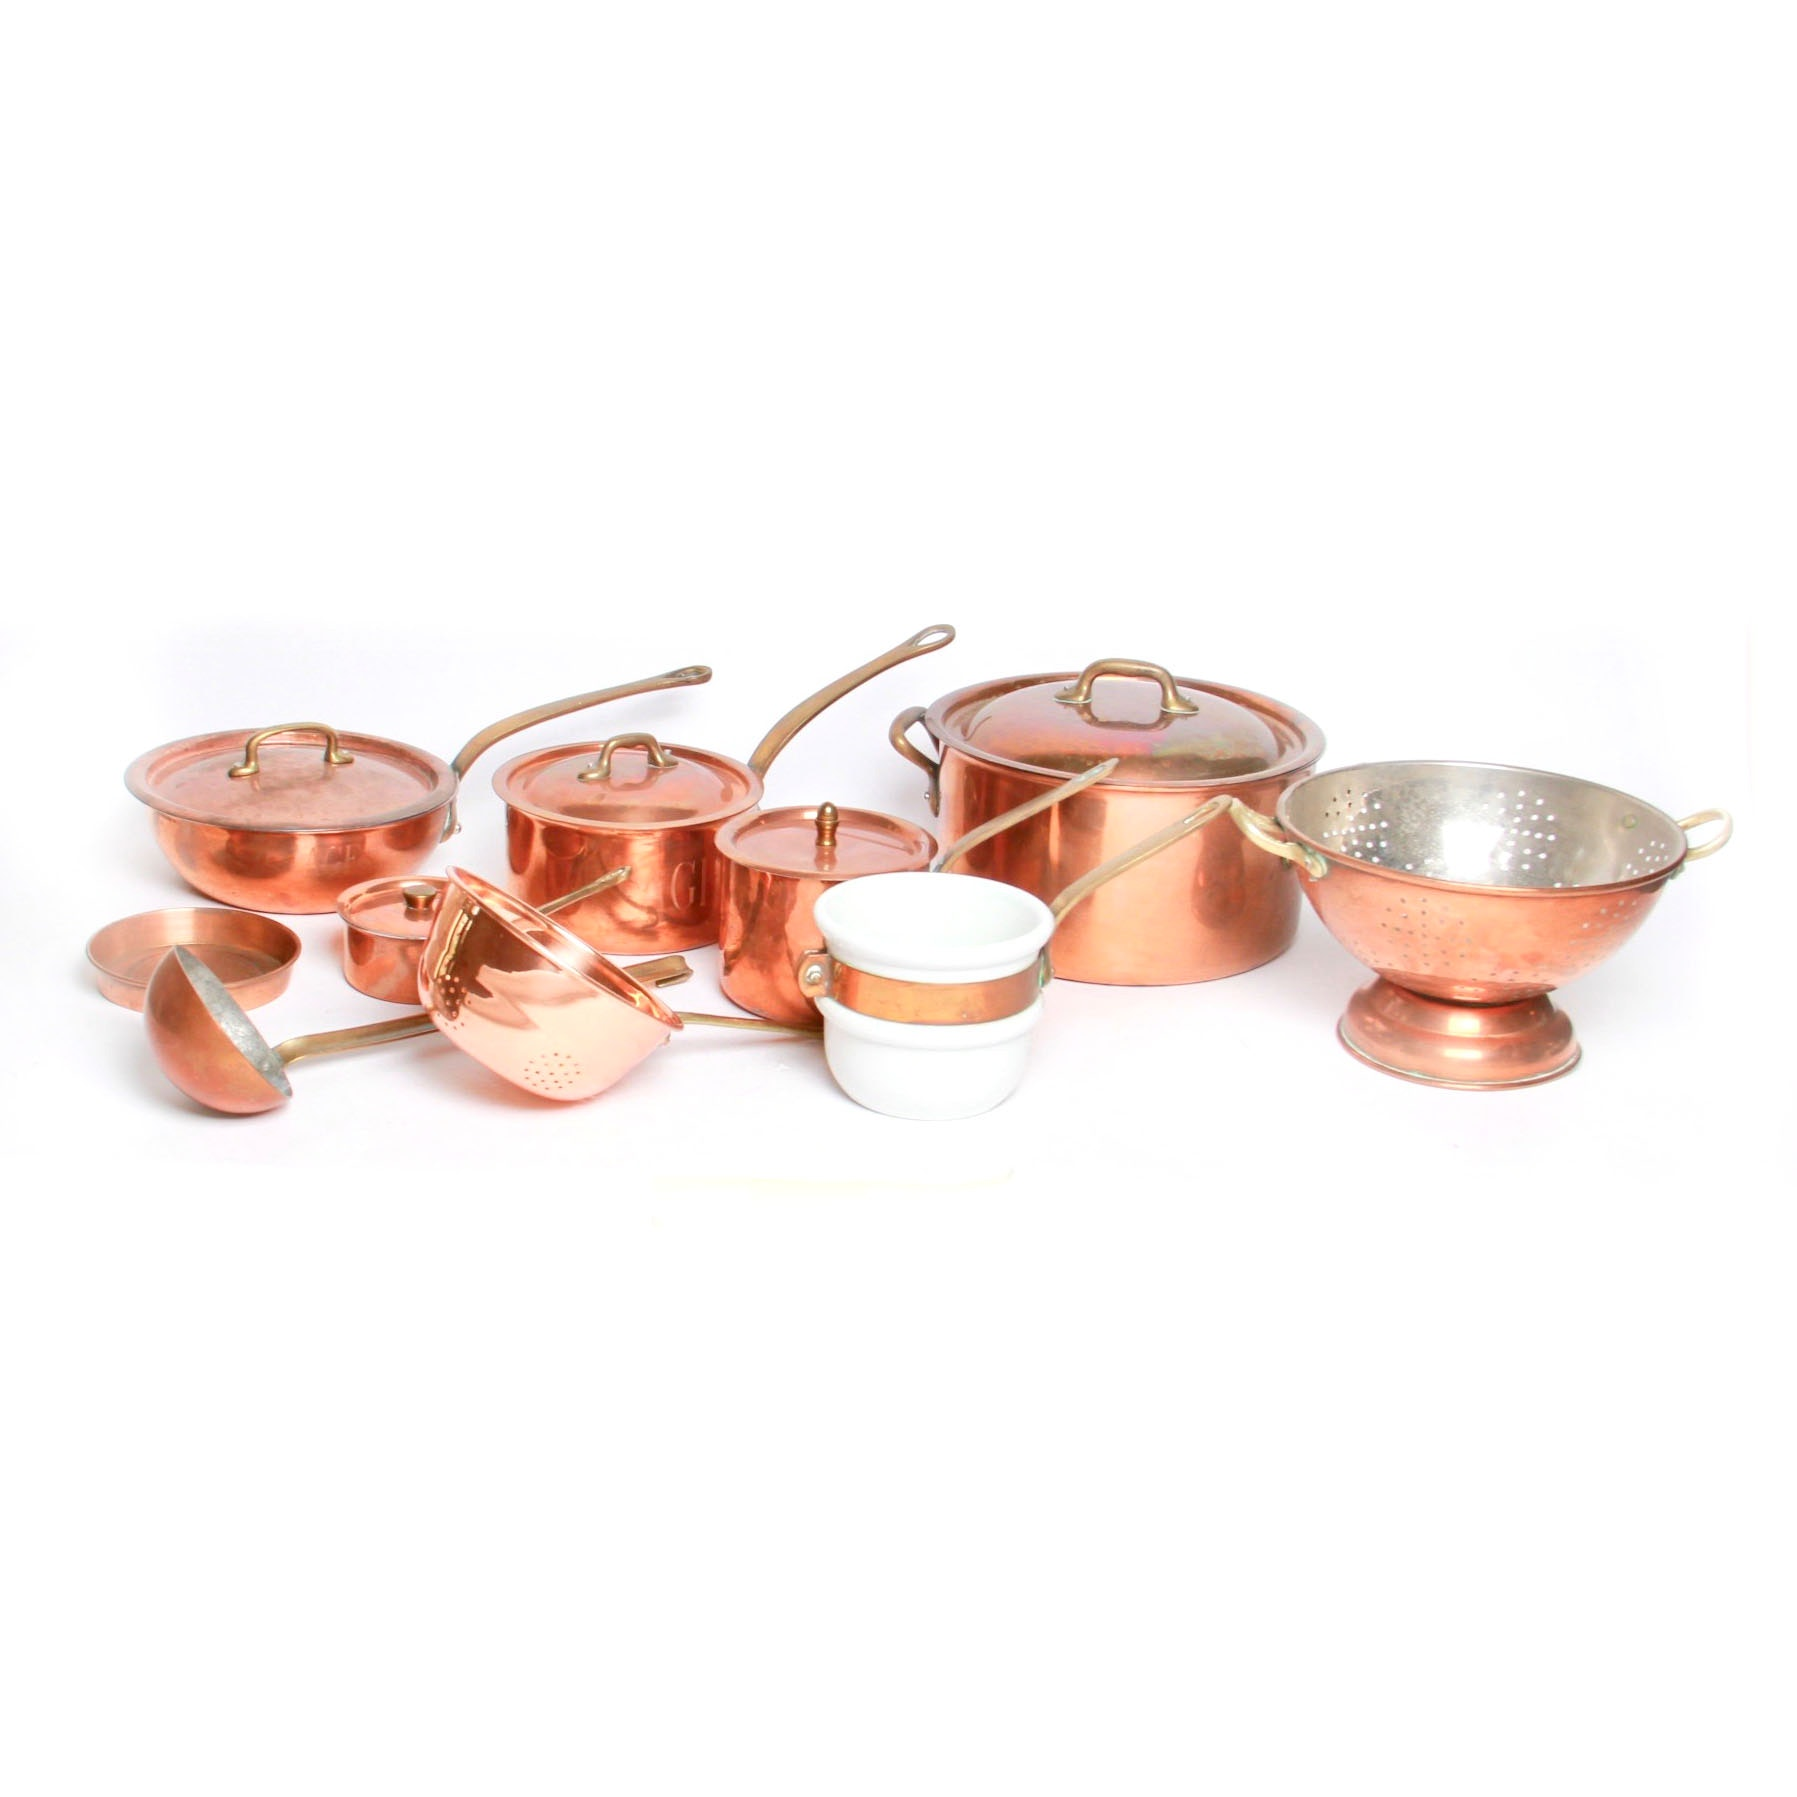 Grouping of Copper Cooking Pots and Pans